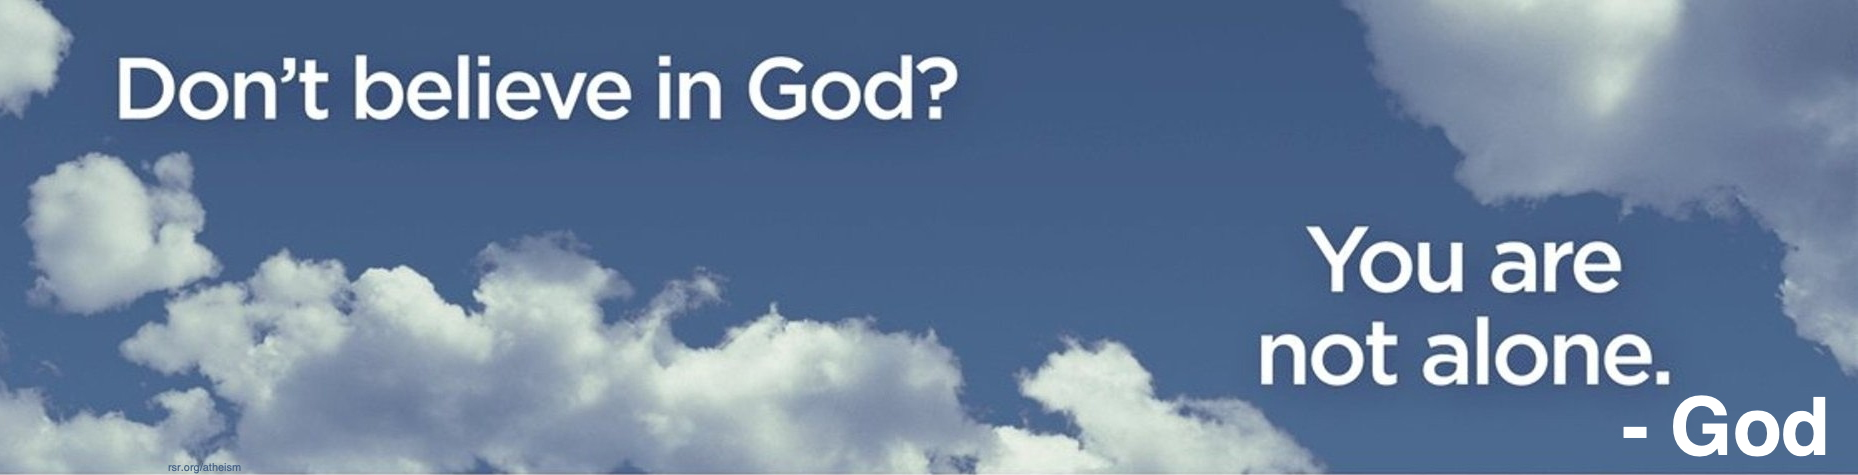 "Atheist billboard: ""Don't believe in God? You are not alone."" -God"